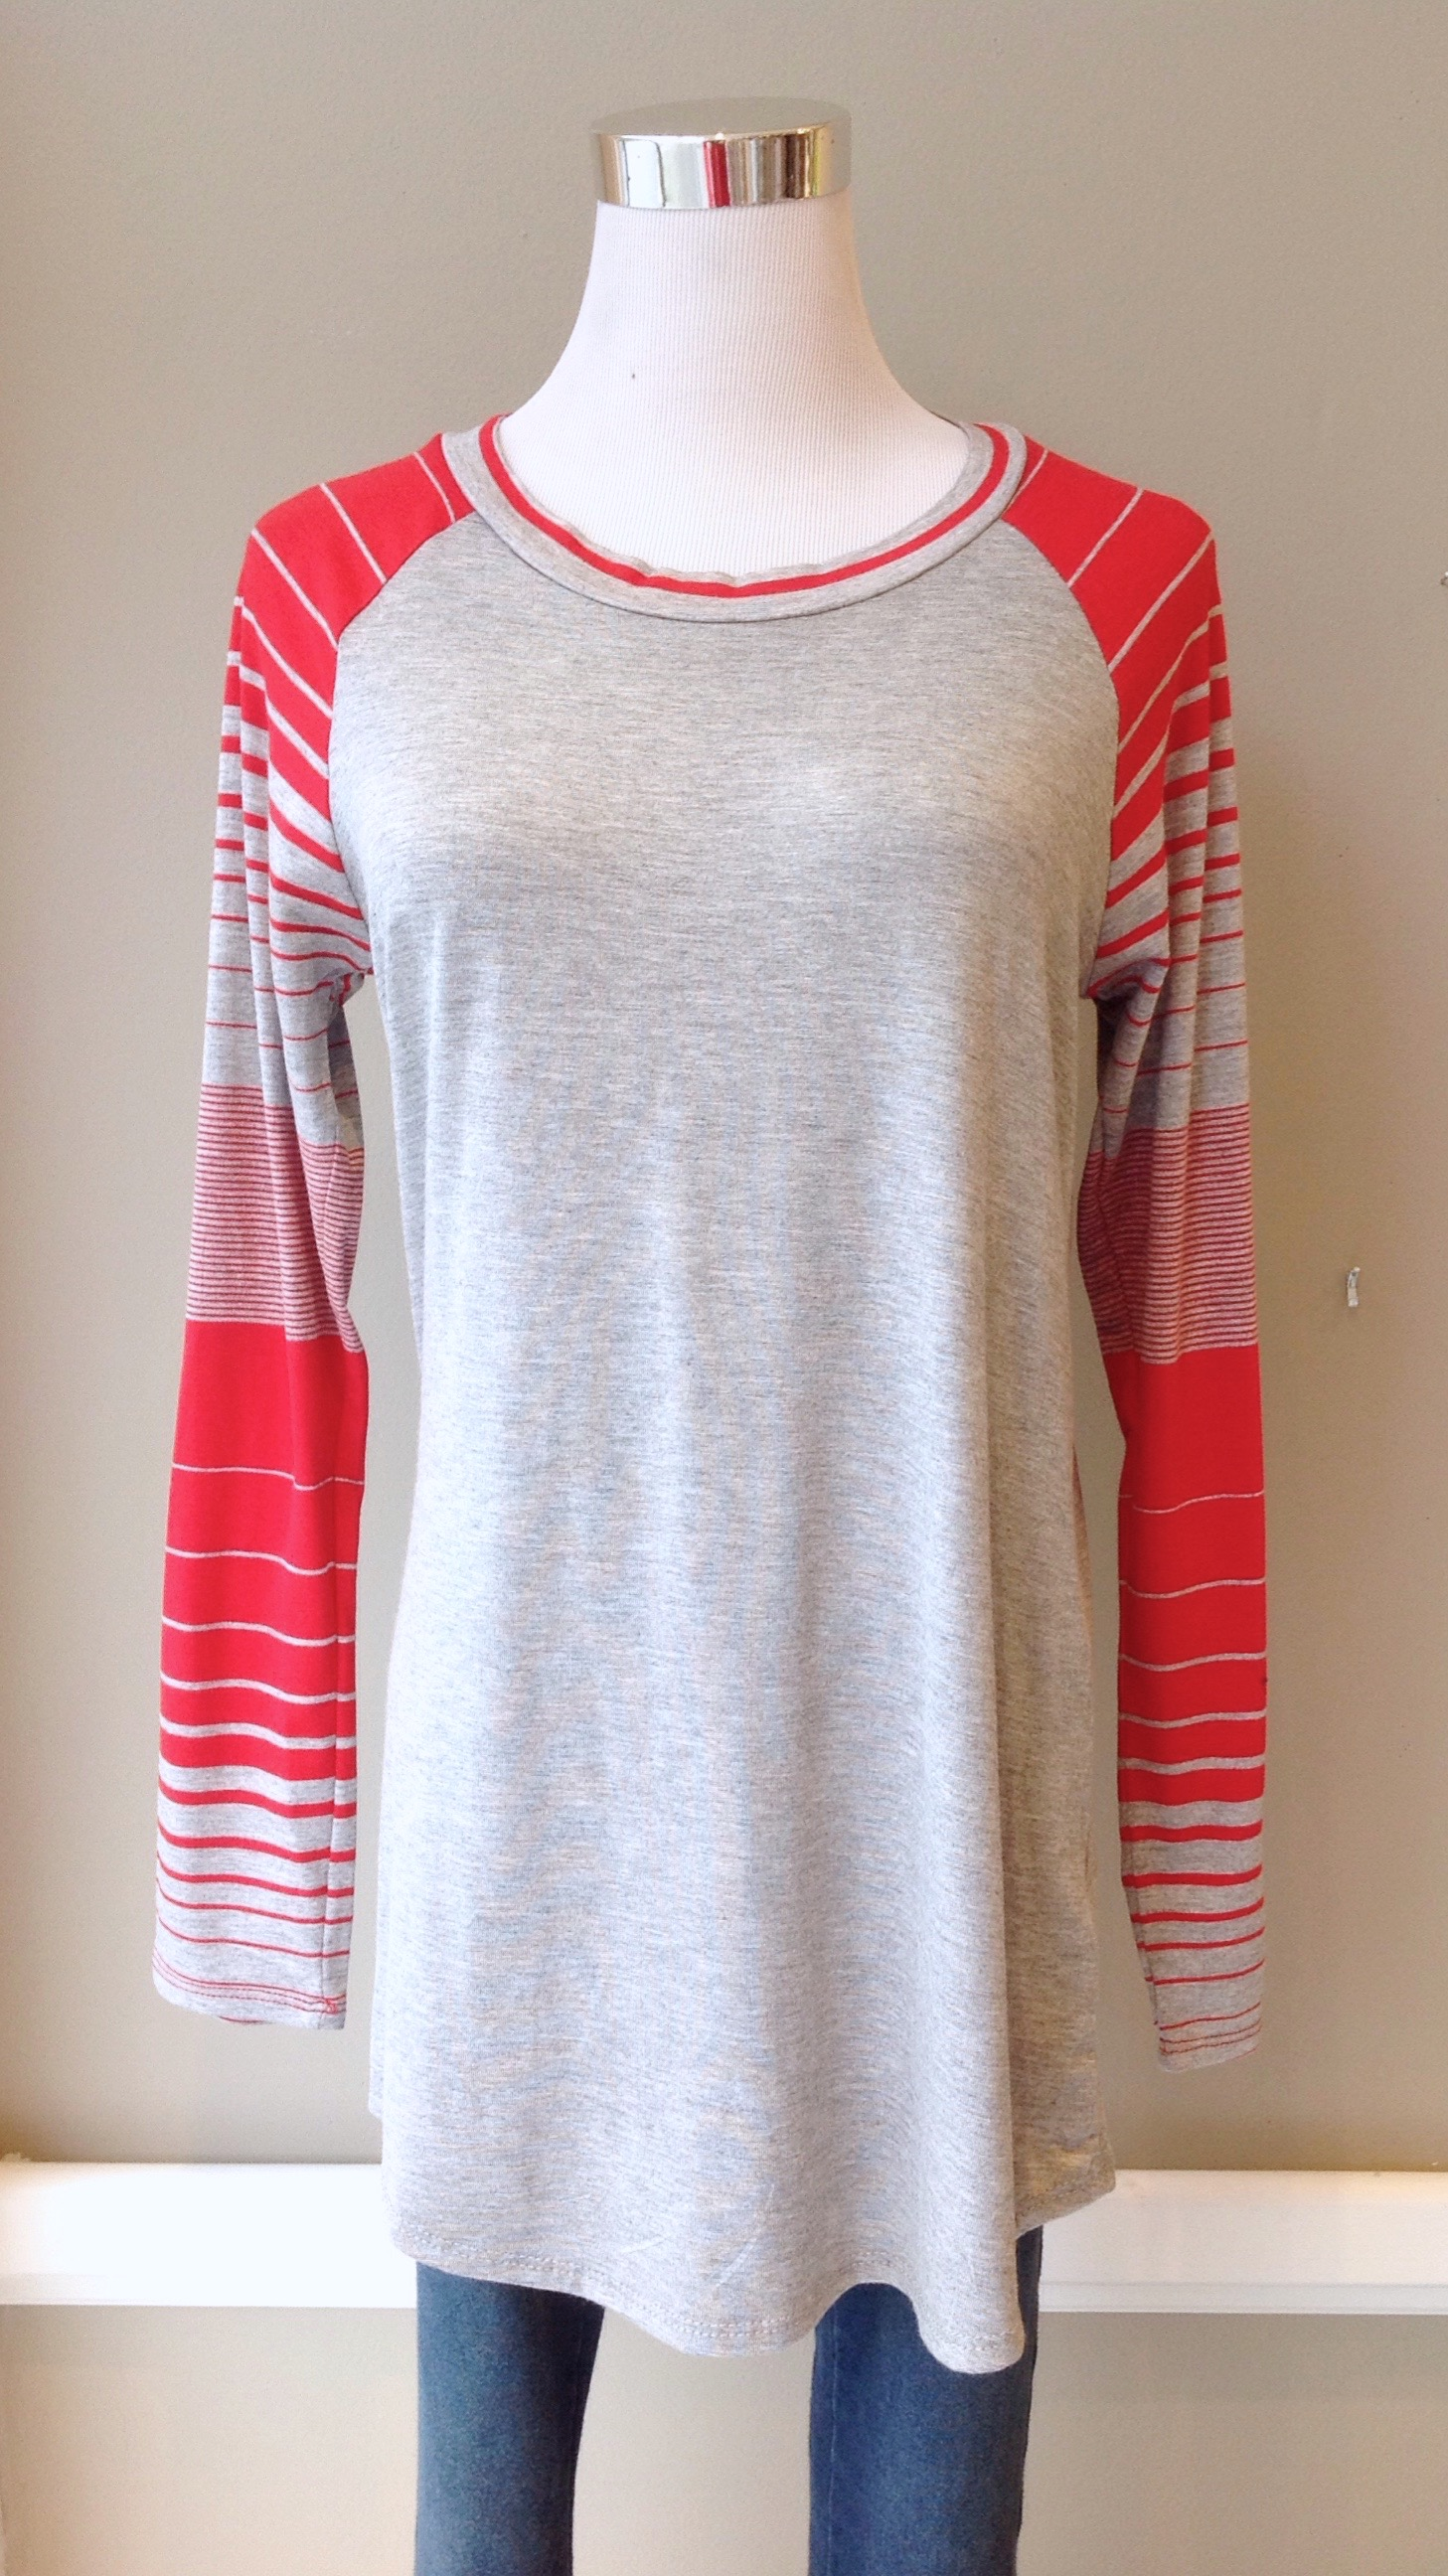 Solid and stripe baseball tunic in heather grey/red, $30